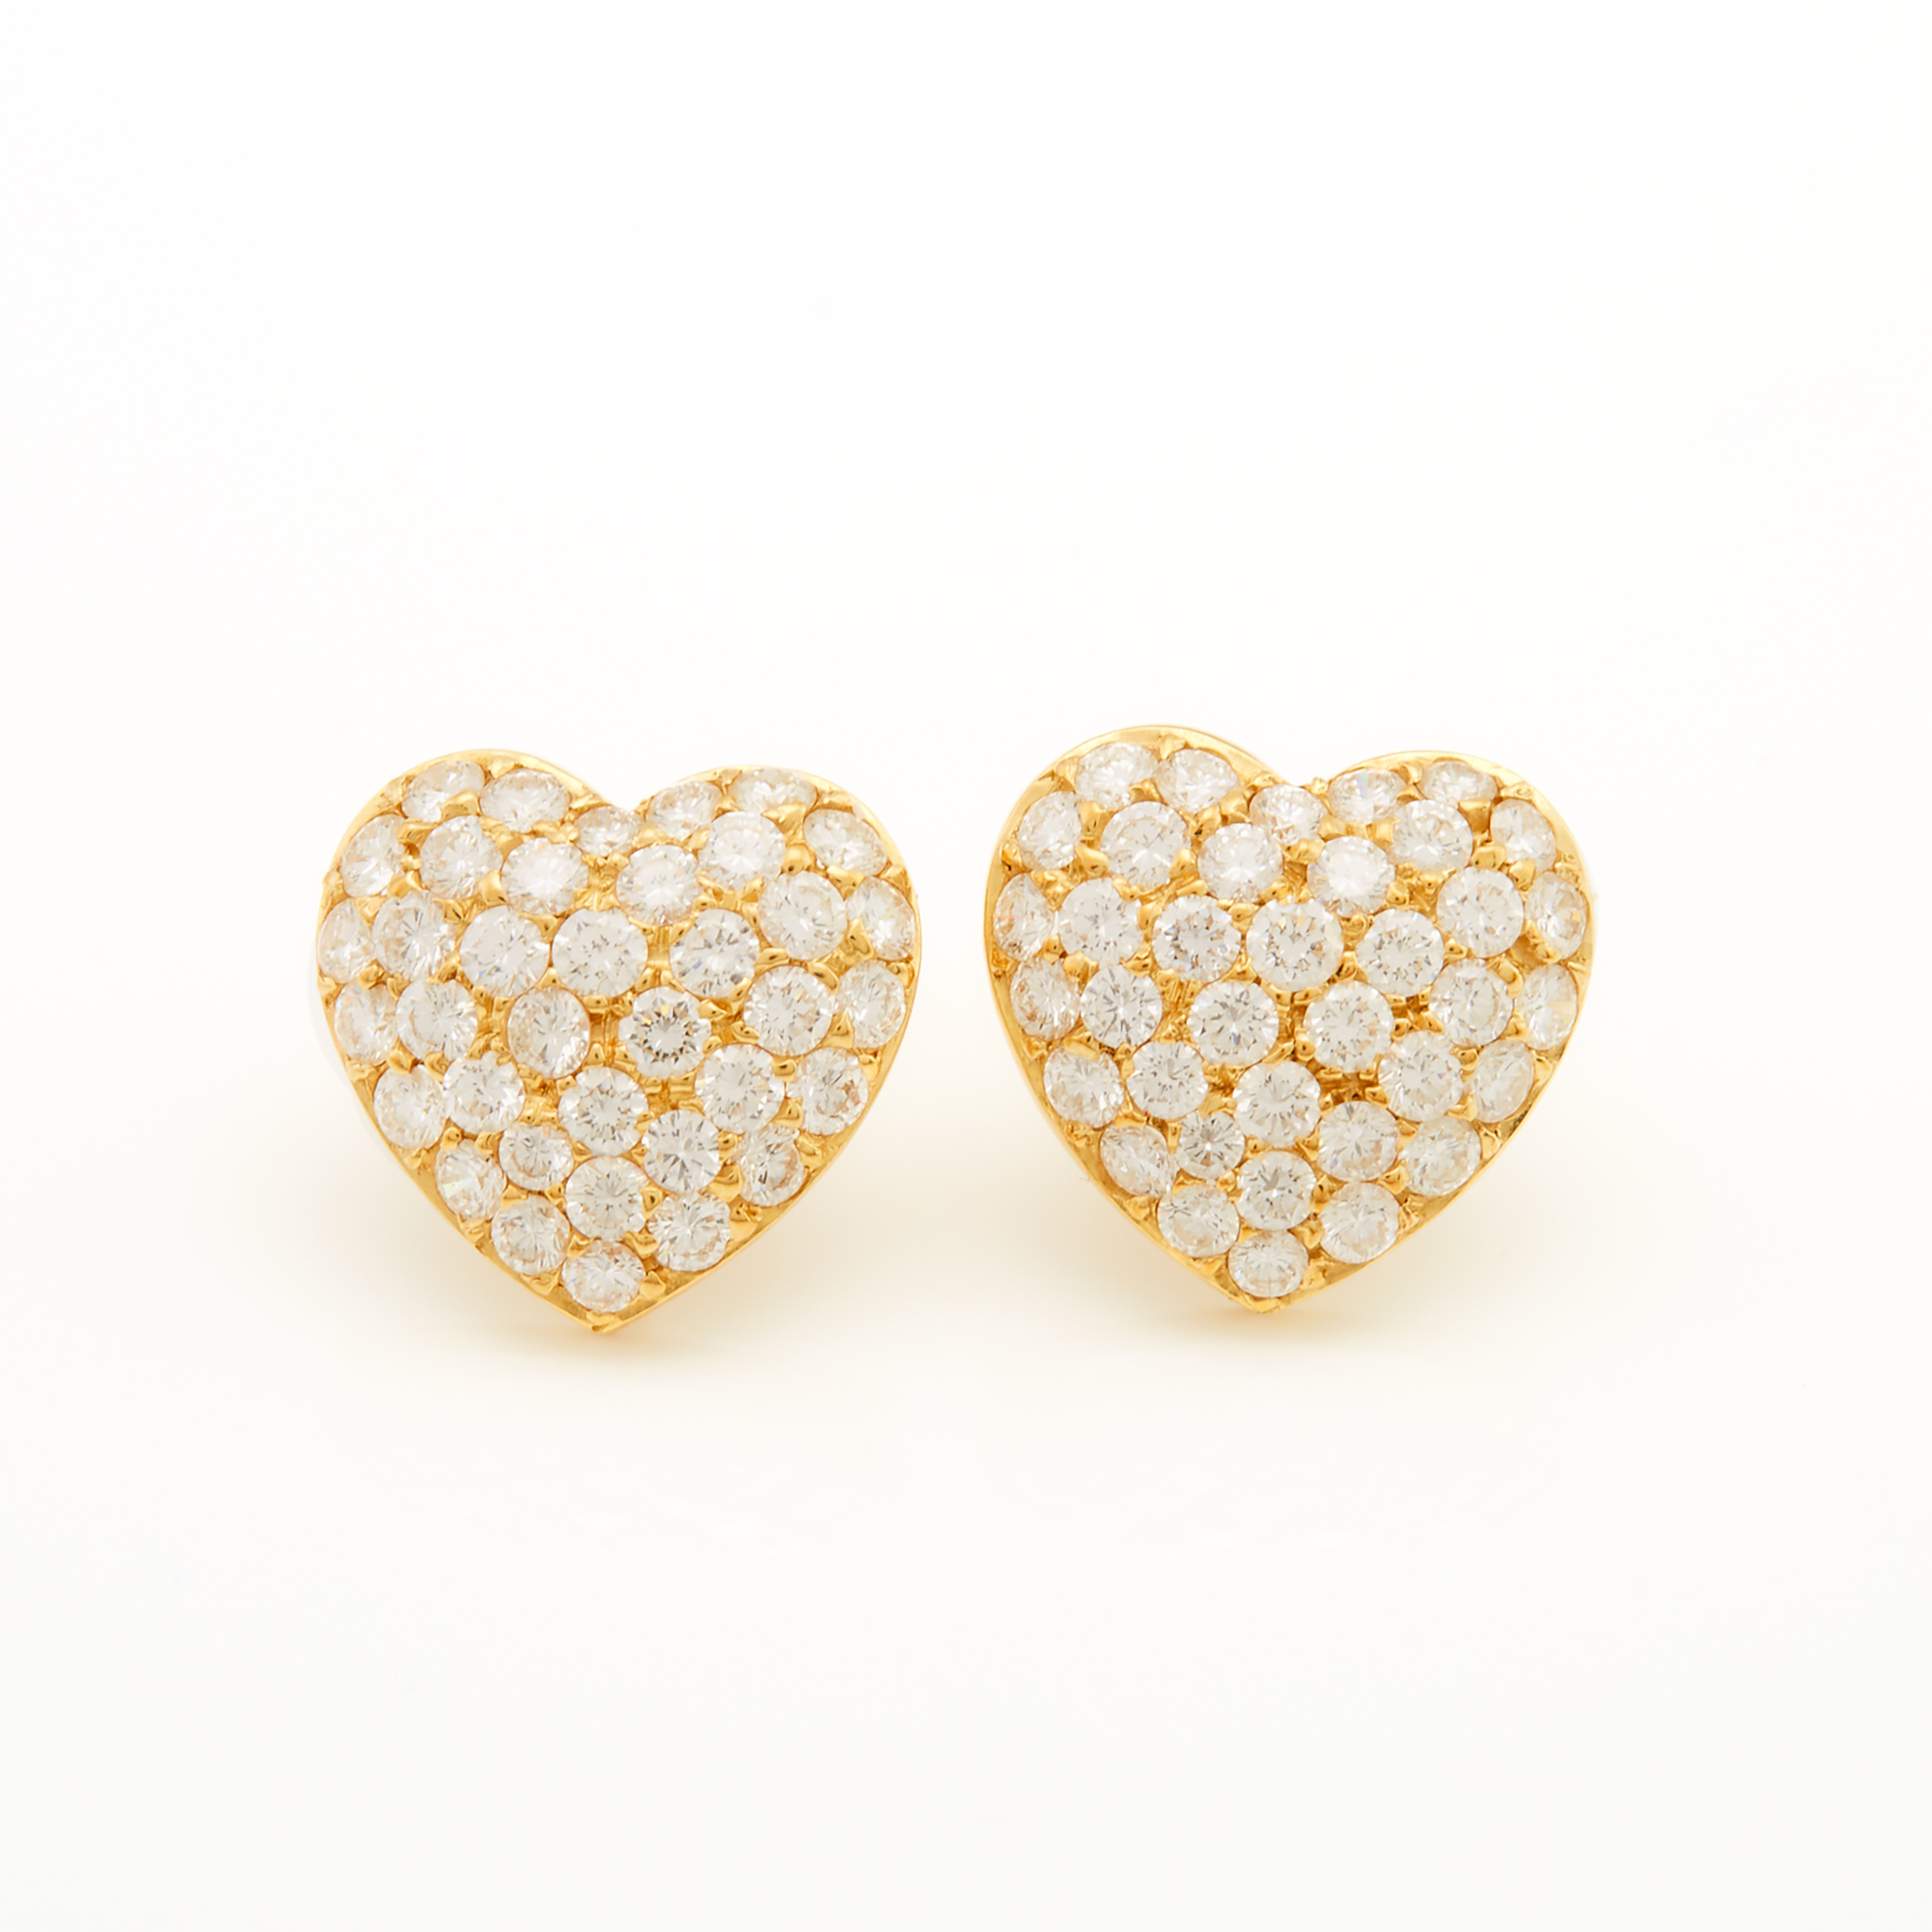 Pair Of 18k Yellow Gold Heart-Shaped Button Earrings